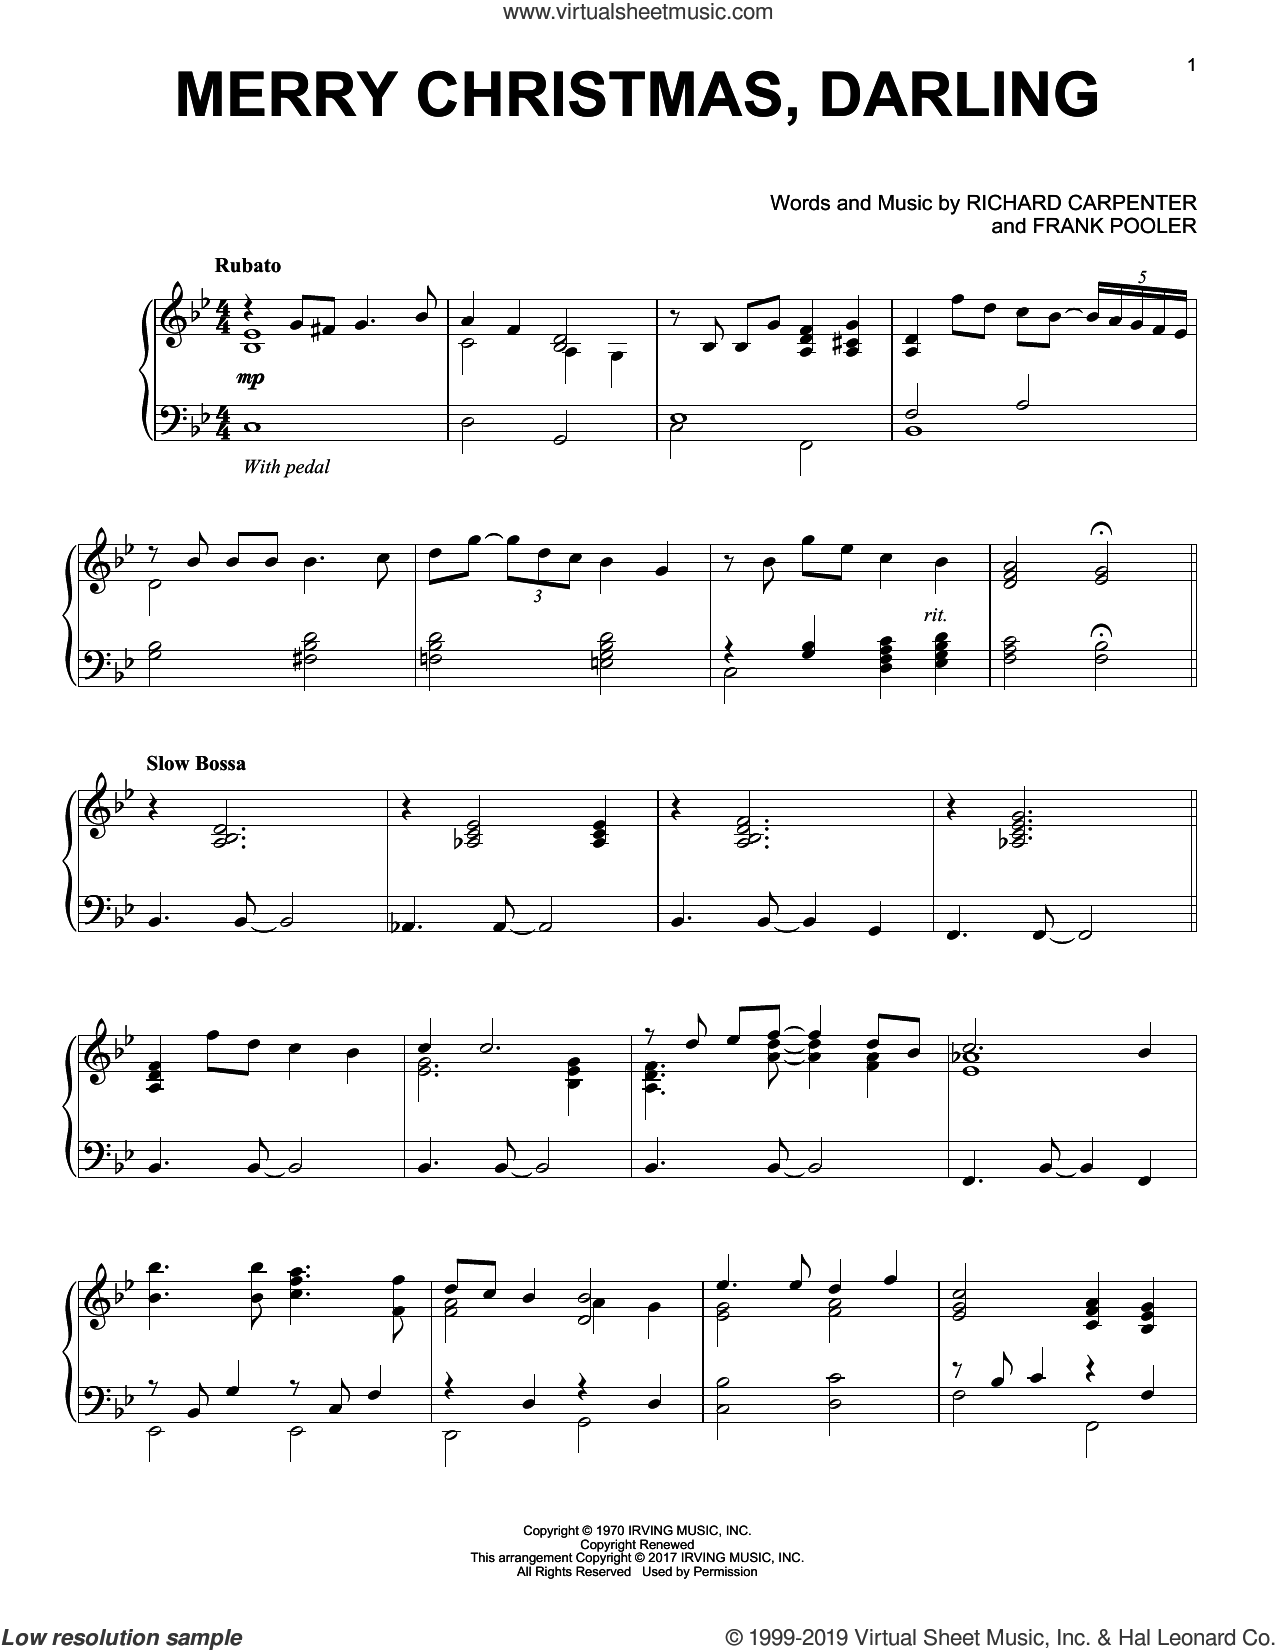 Merry Christmas, Darling [Jazz version] sheet music for piano solo by Richard Carpenter and Frank Pooler, intermediate skill level